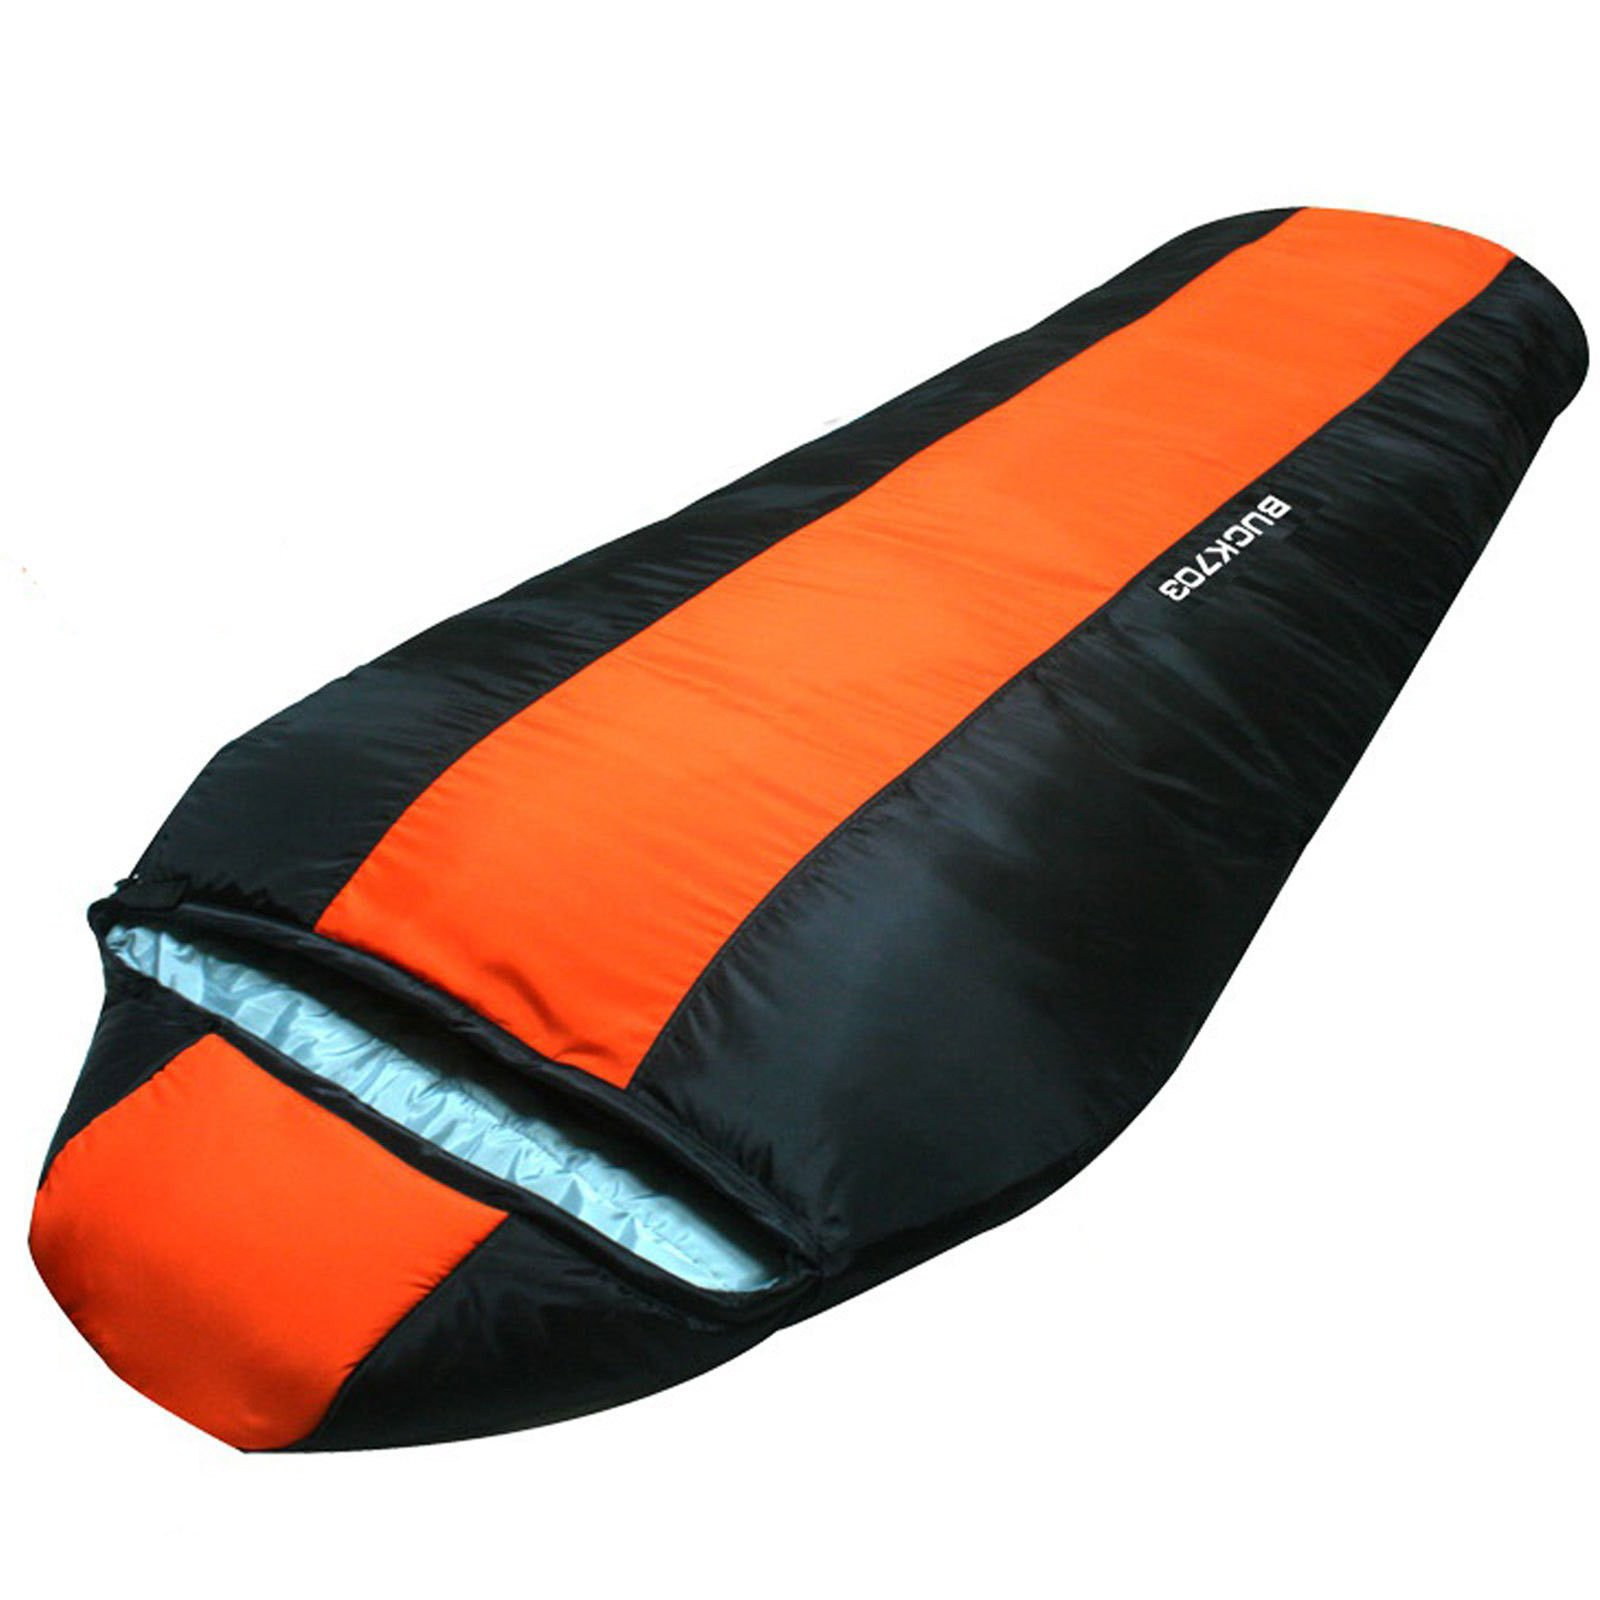 8Oz Sleeping Bag 3 Season Lightweight Camping Backpacking Ultralight by Sleeping Bag